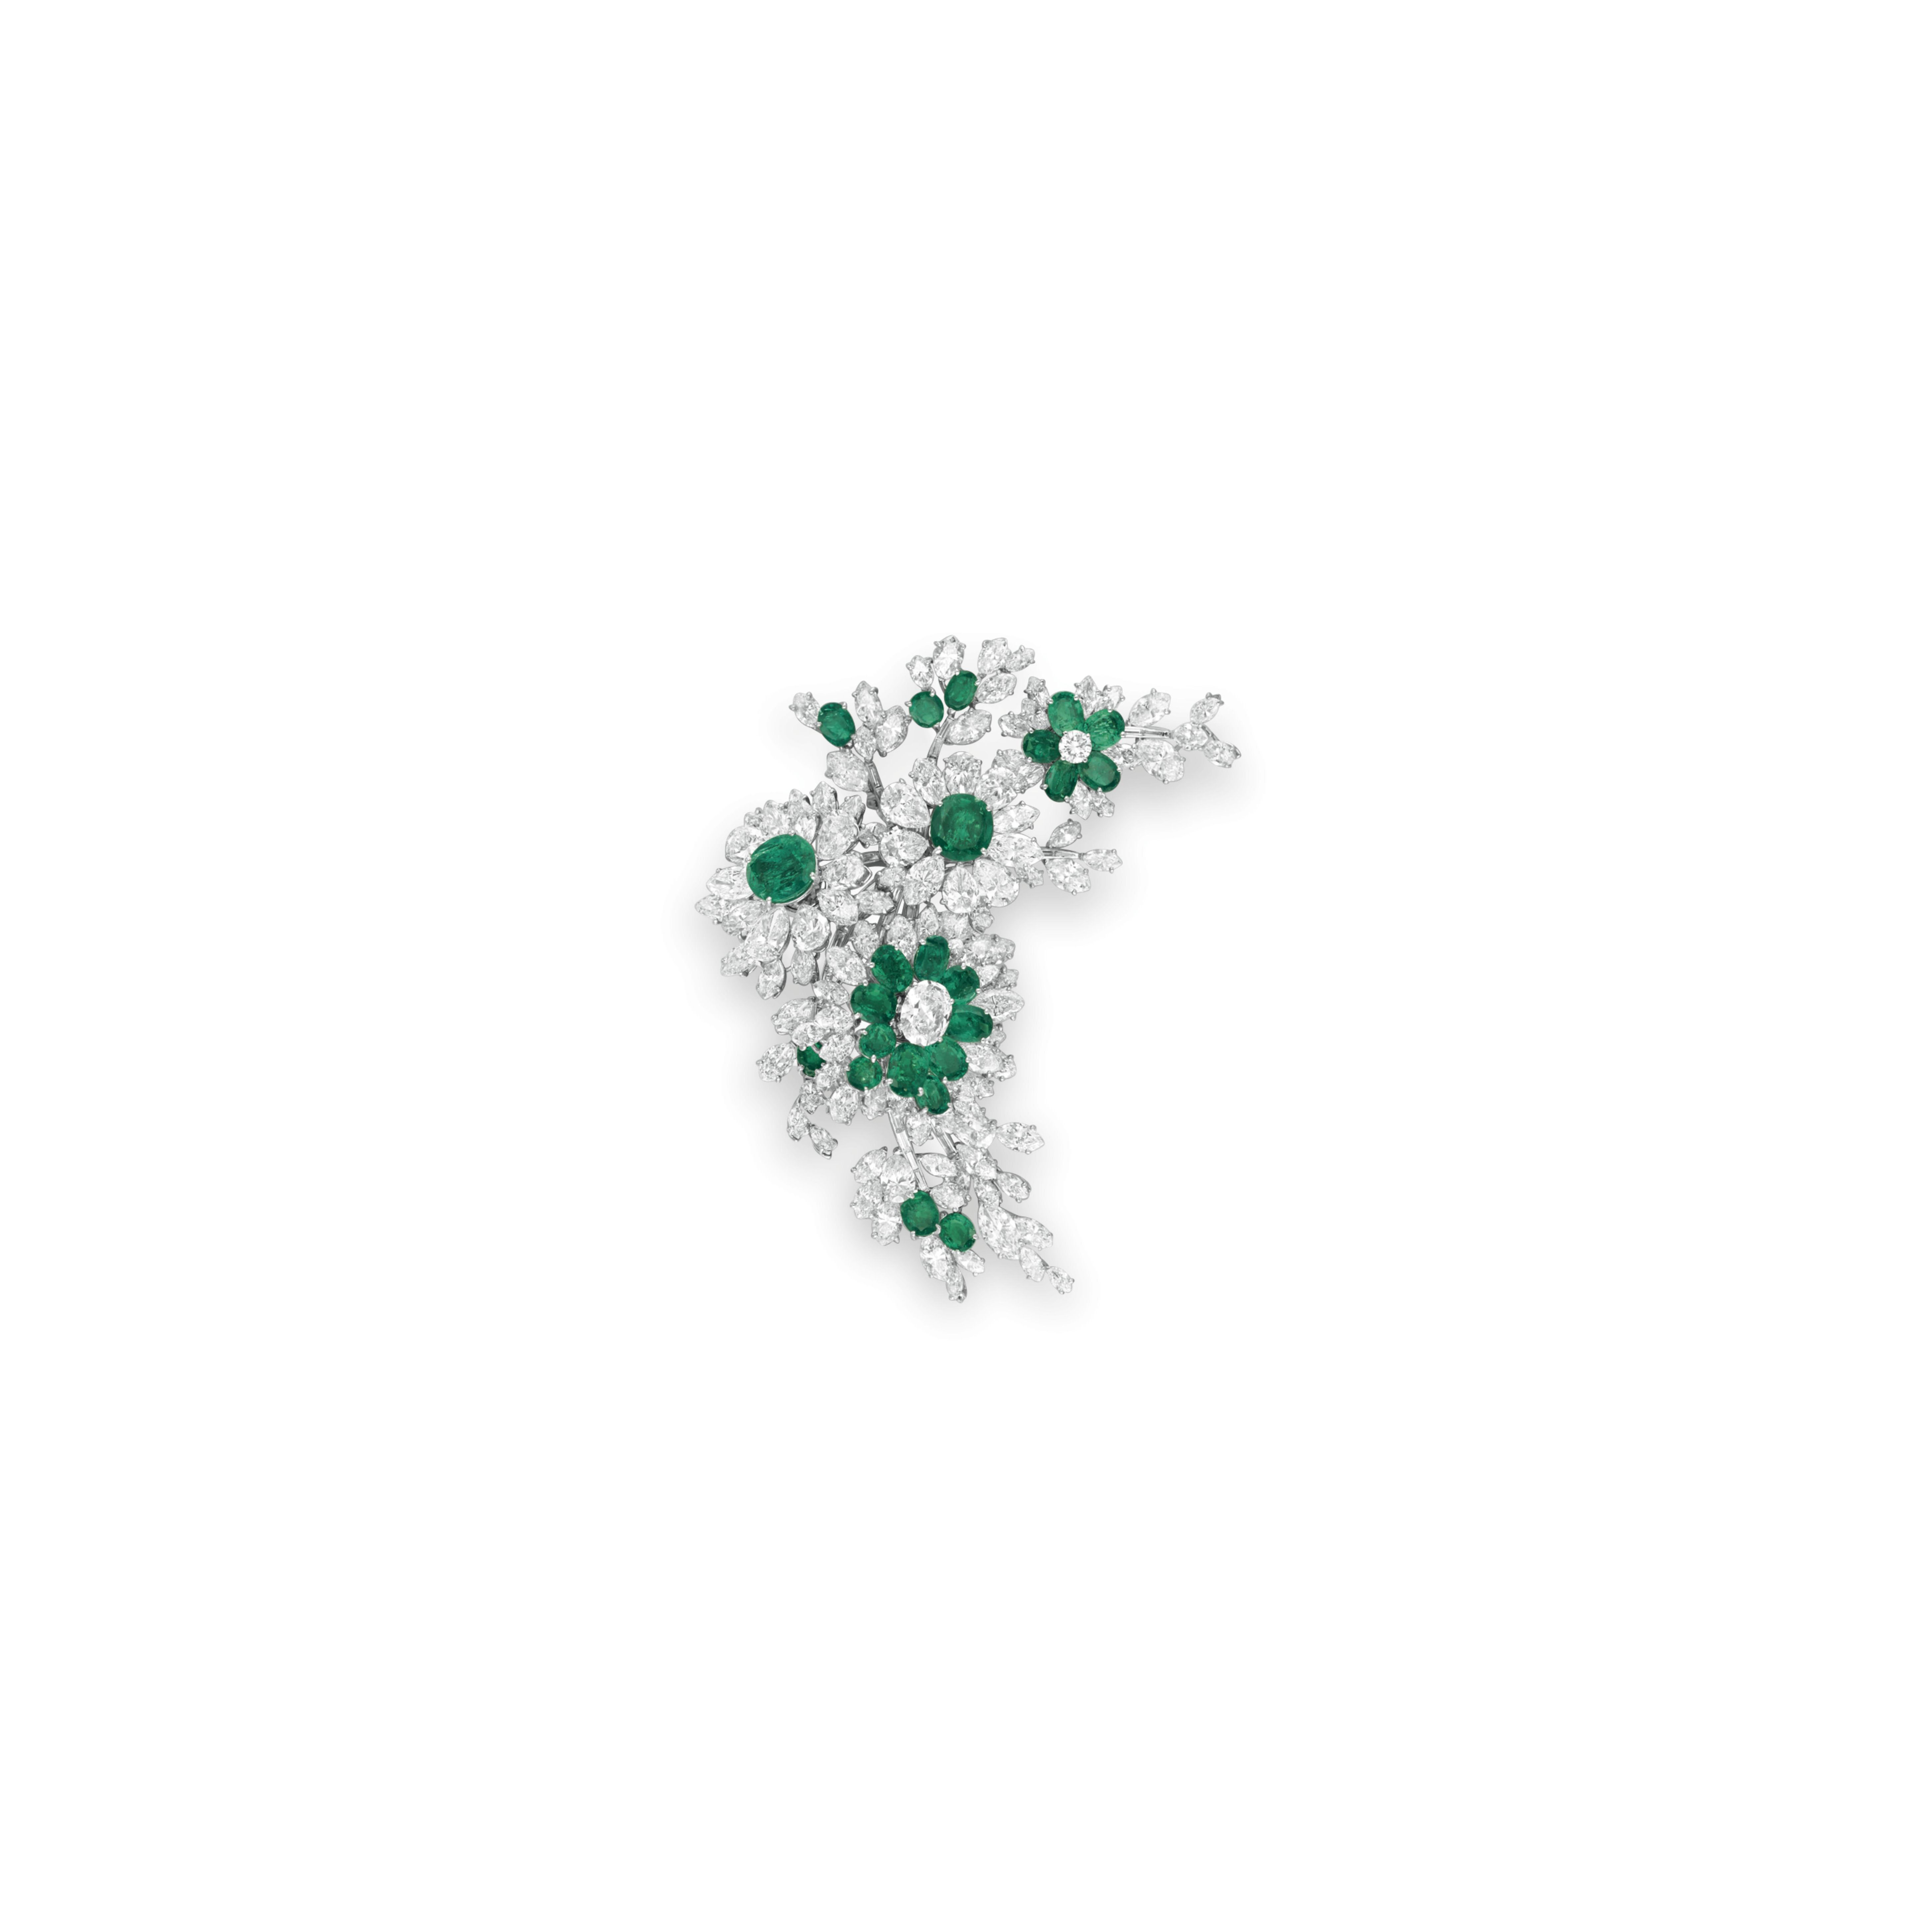 AN EMERALD AND DIAMOND FLOWER BROOCH, BY BVLGARI